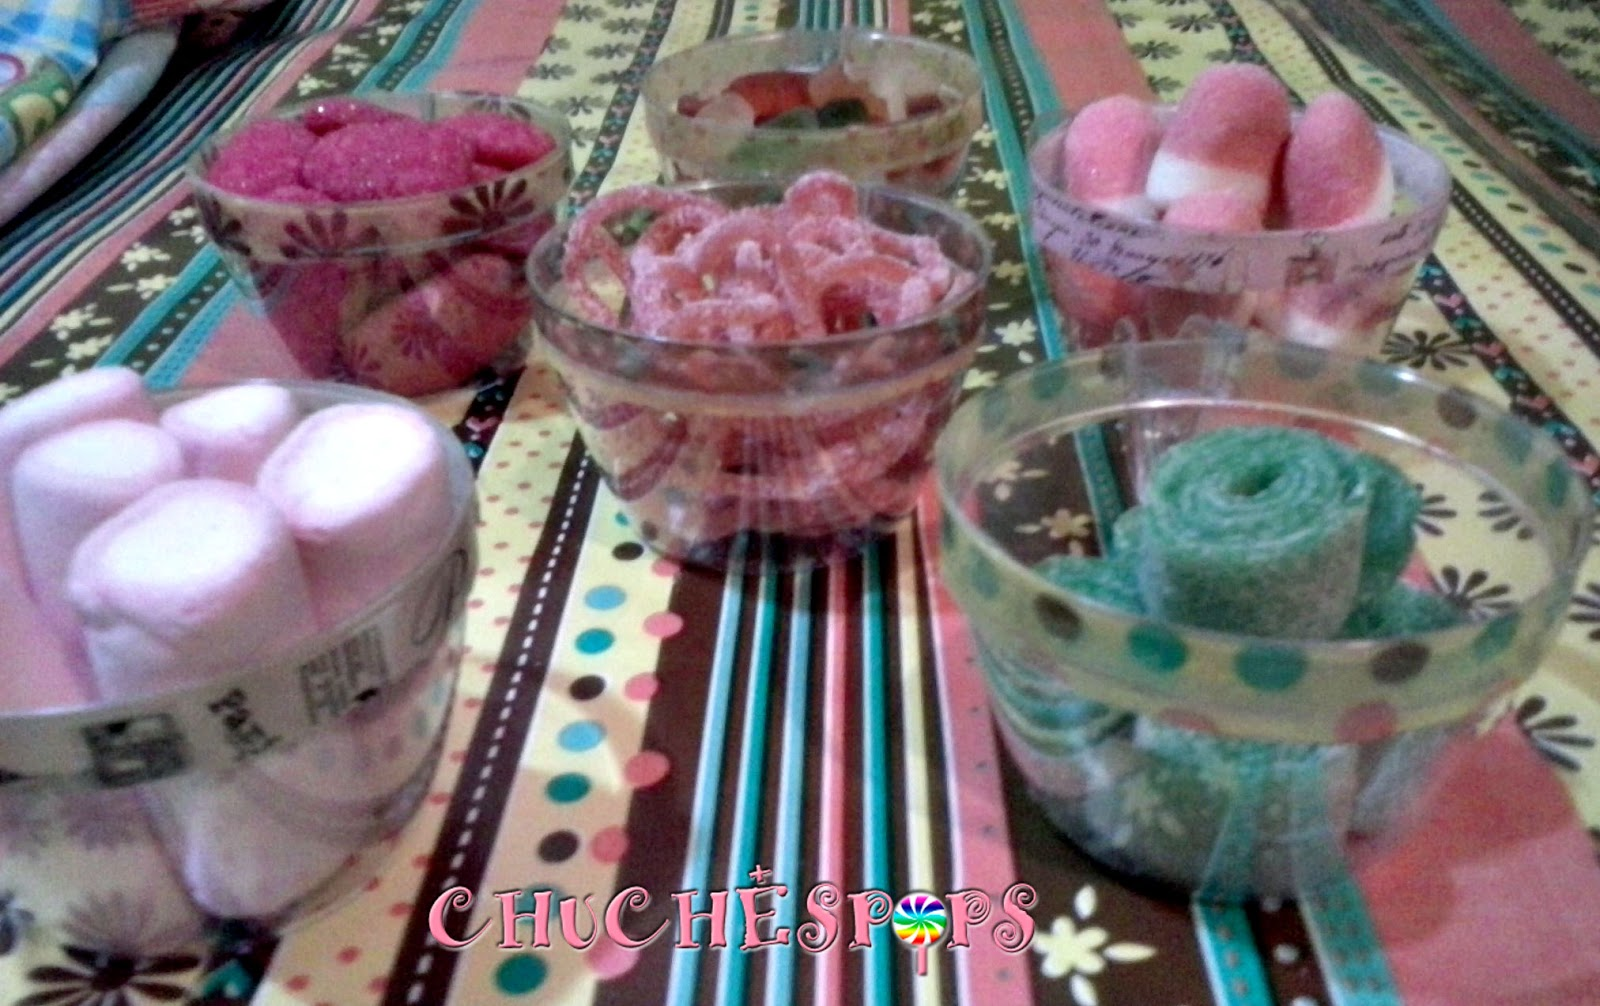 TTazas decoradas washitape con chuches